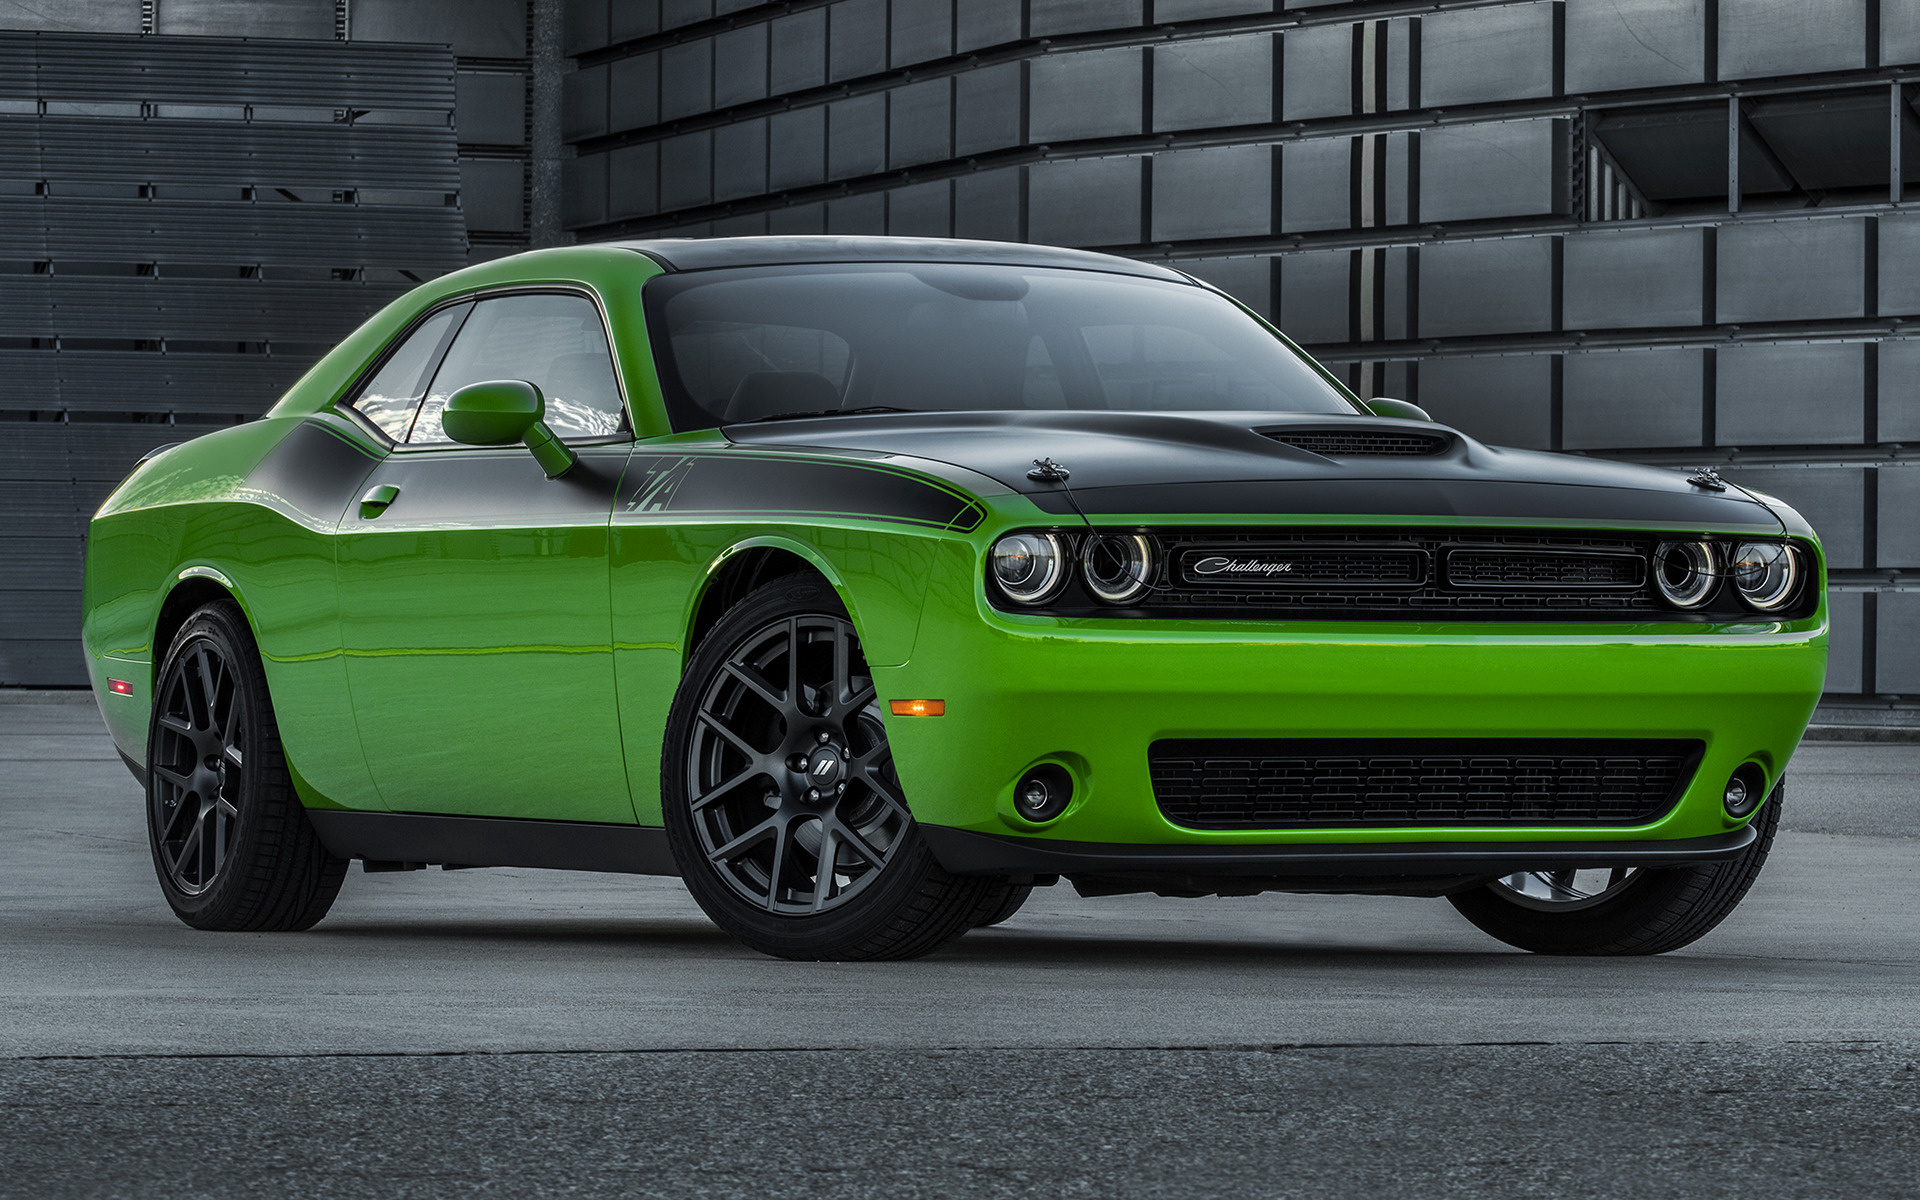 Suzuki Car Wallpaper Dodge Challenger T A 2017 Wallpapers And Hd Images Car